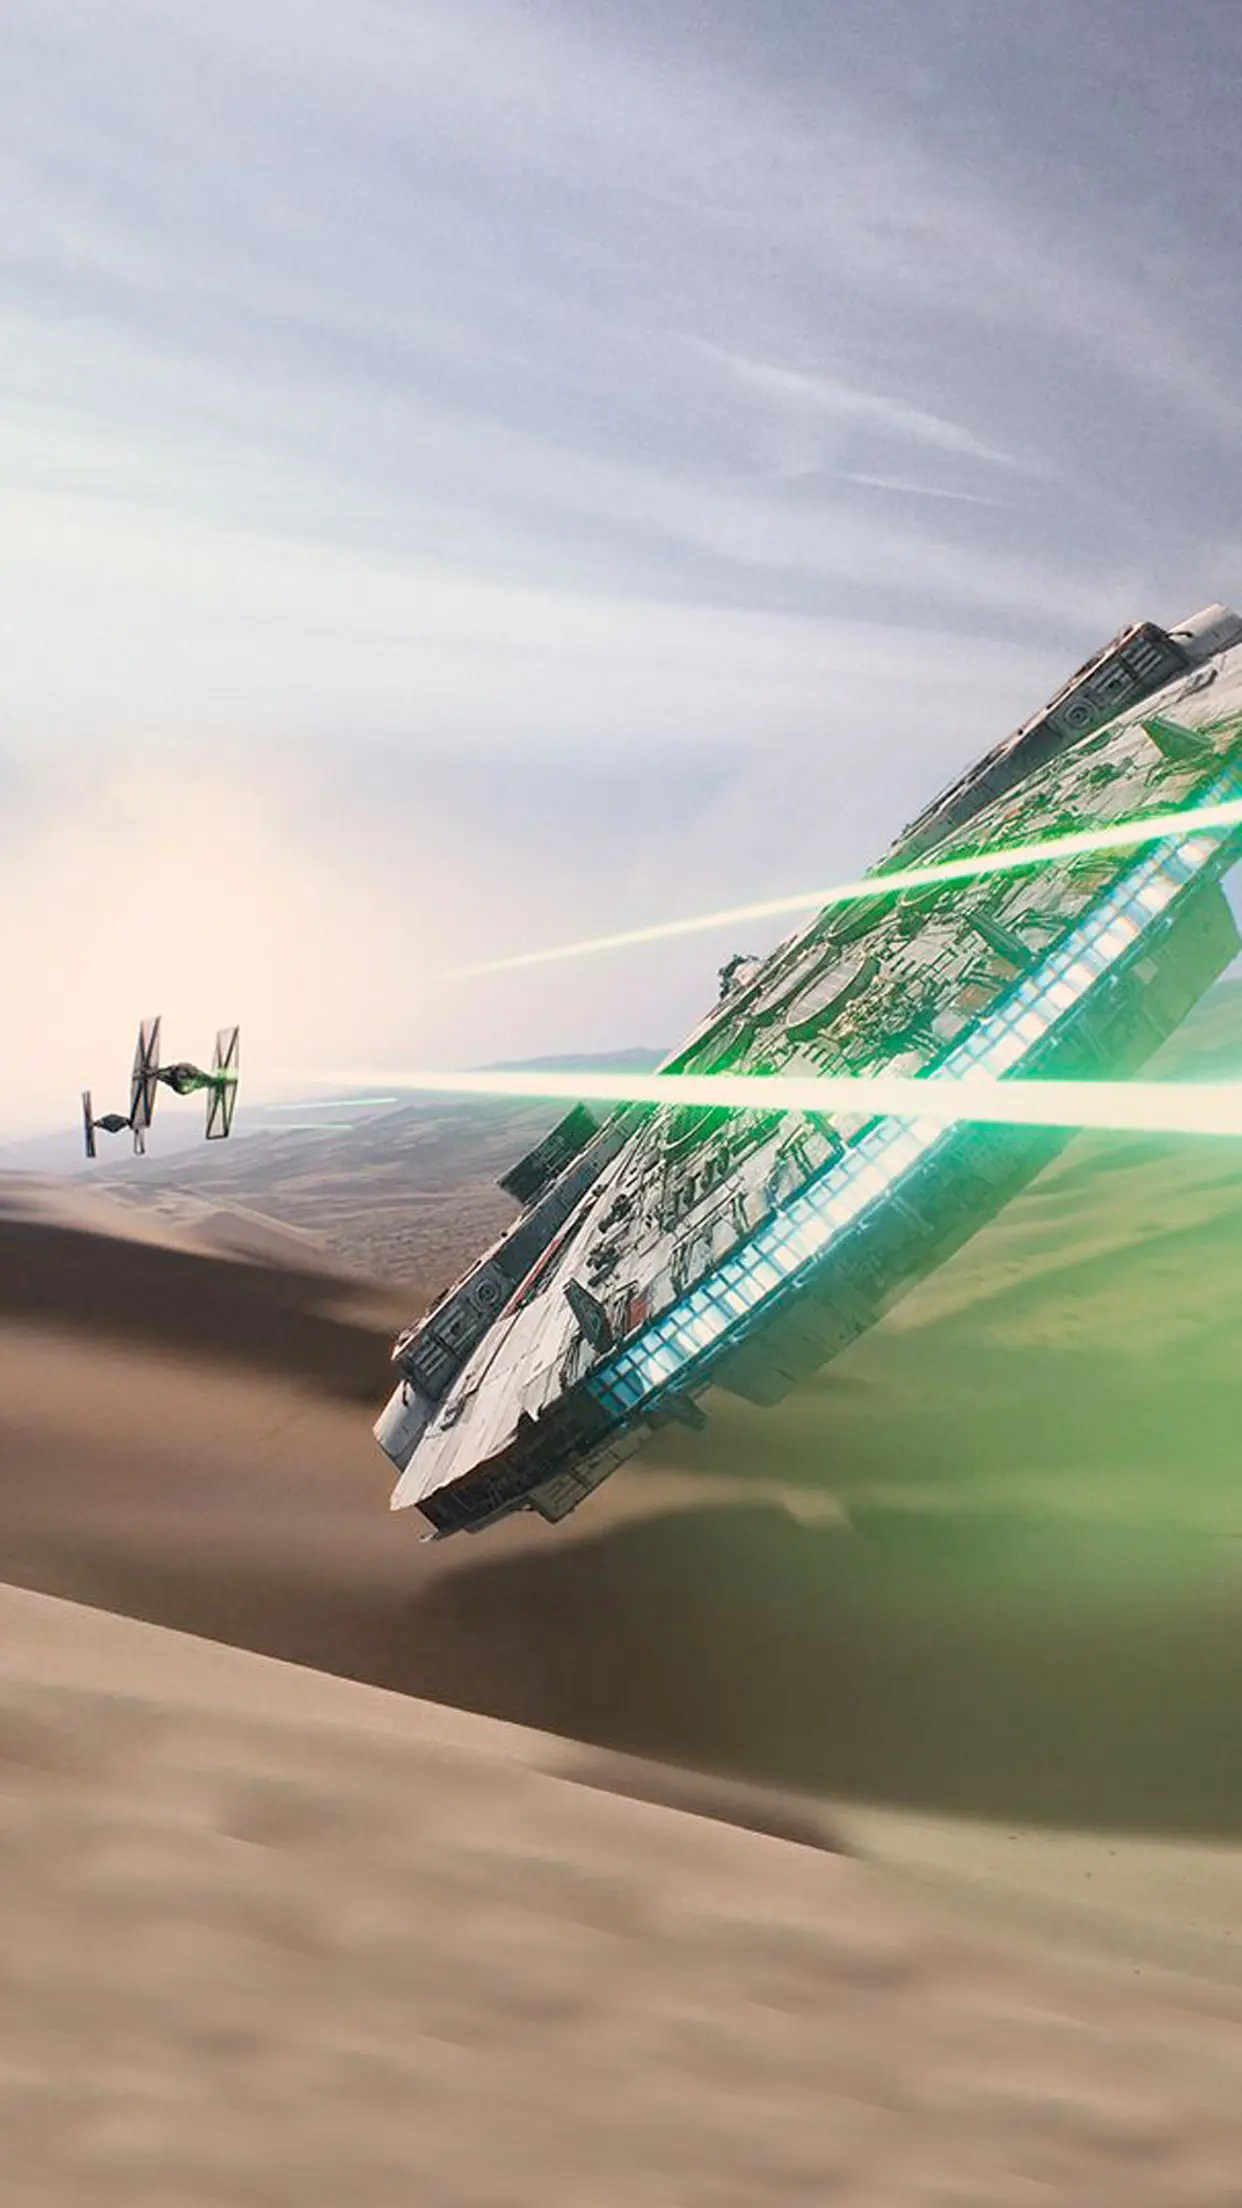 Star War Wallpaper Iphone 6 Disfruta Ya De Los Wallpapers De Star Wars El Despertar